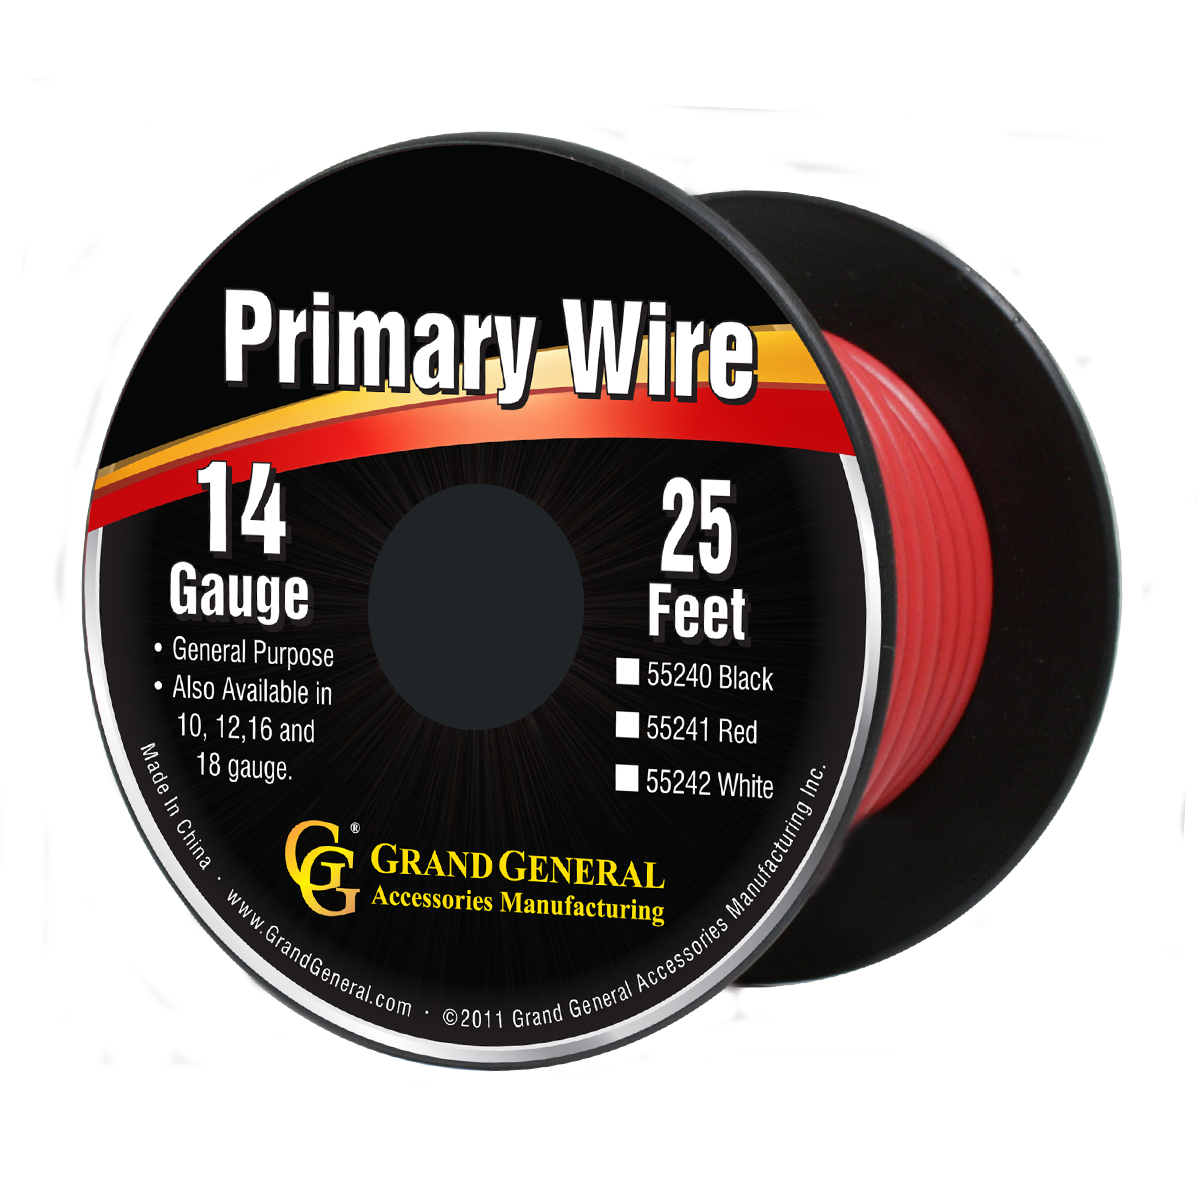 55241/55241SP Primary Wire in 14 Gauge, 25 Feet